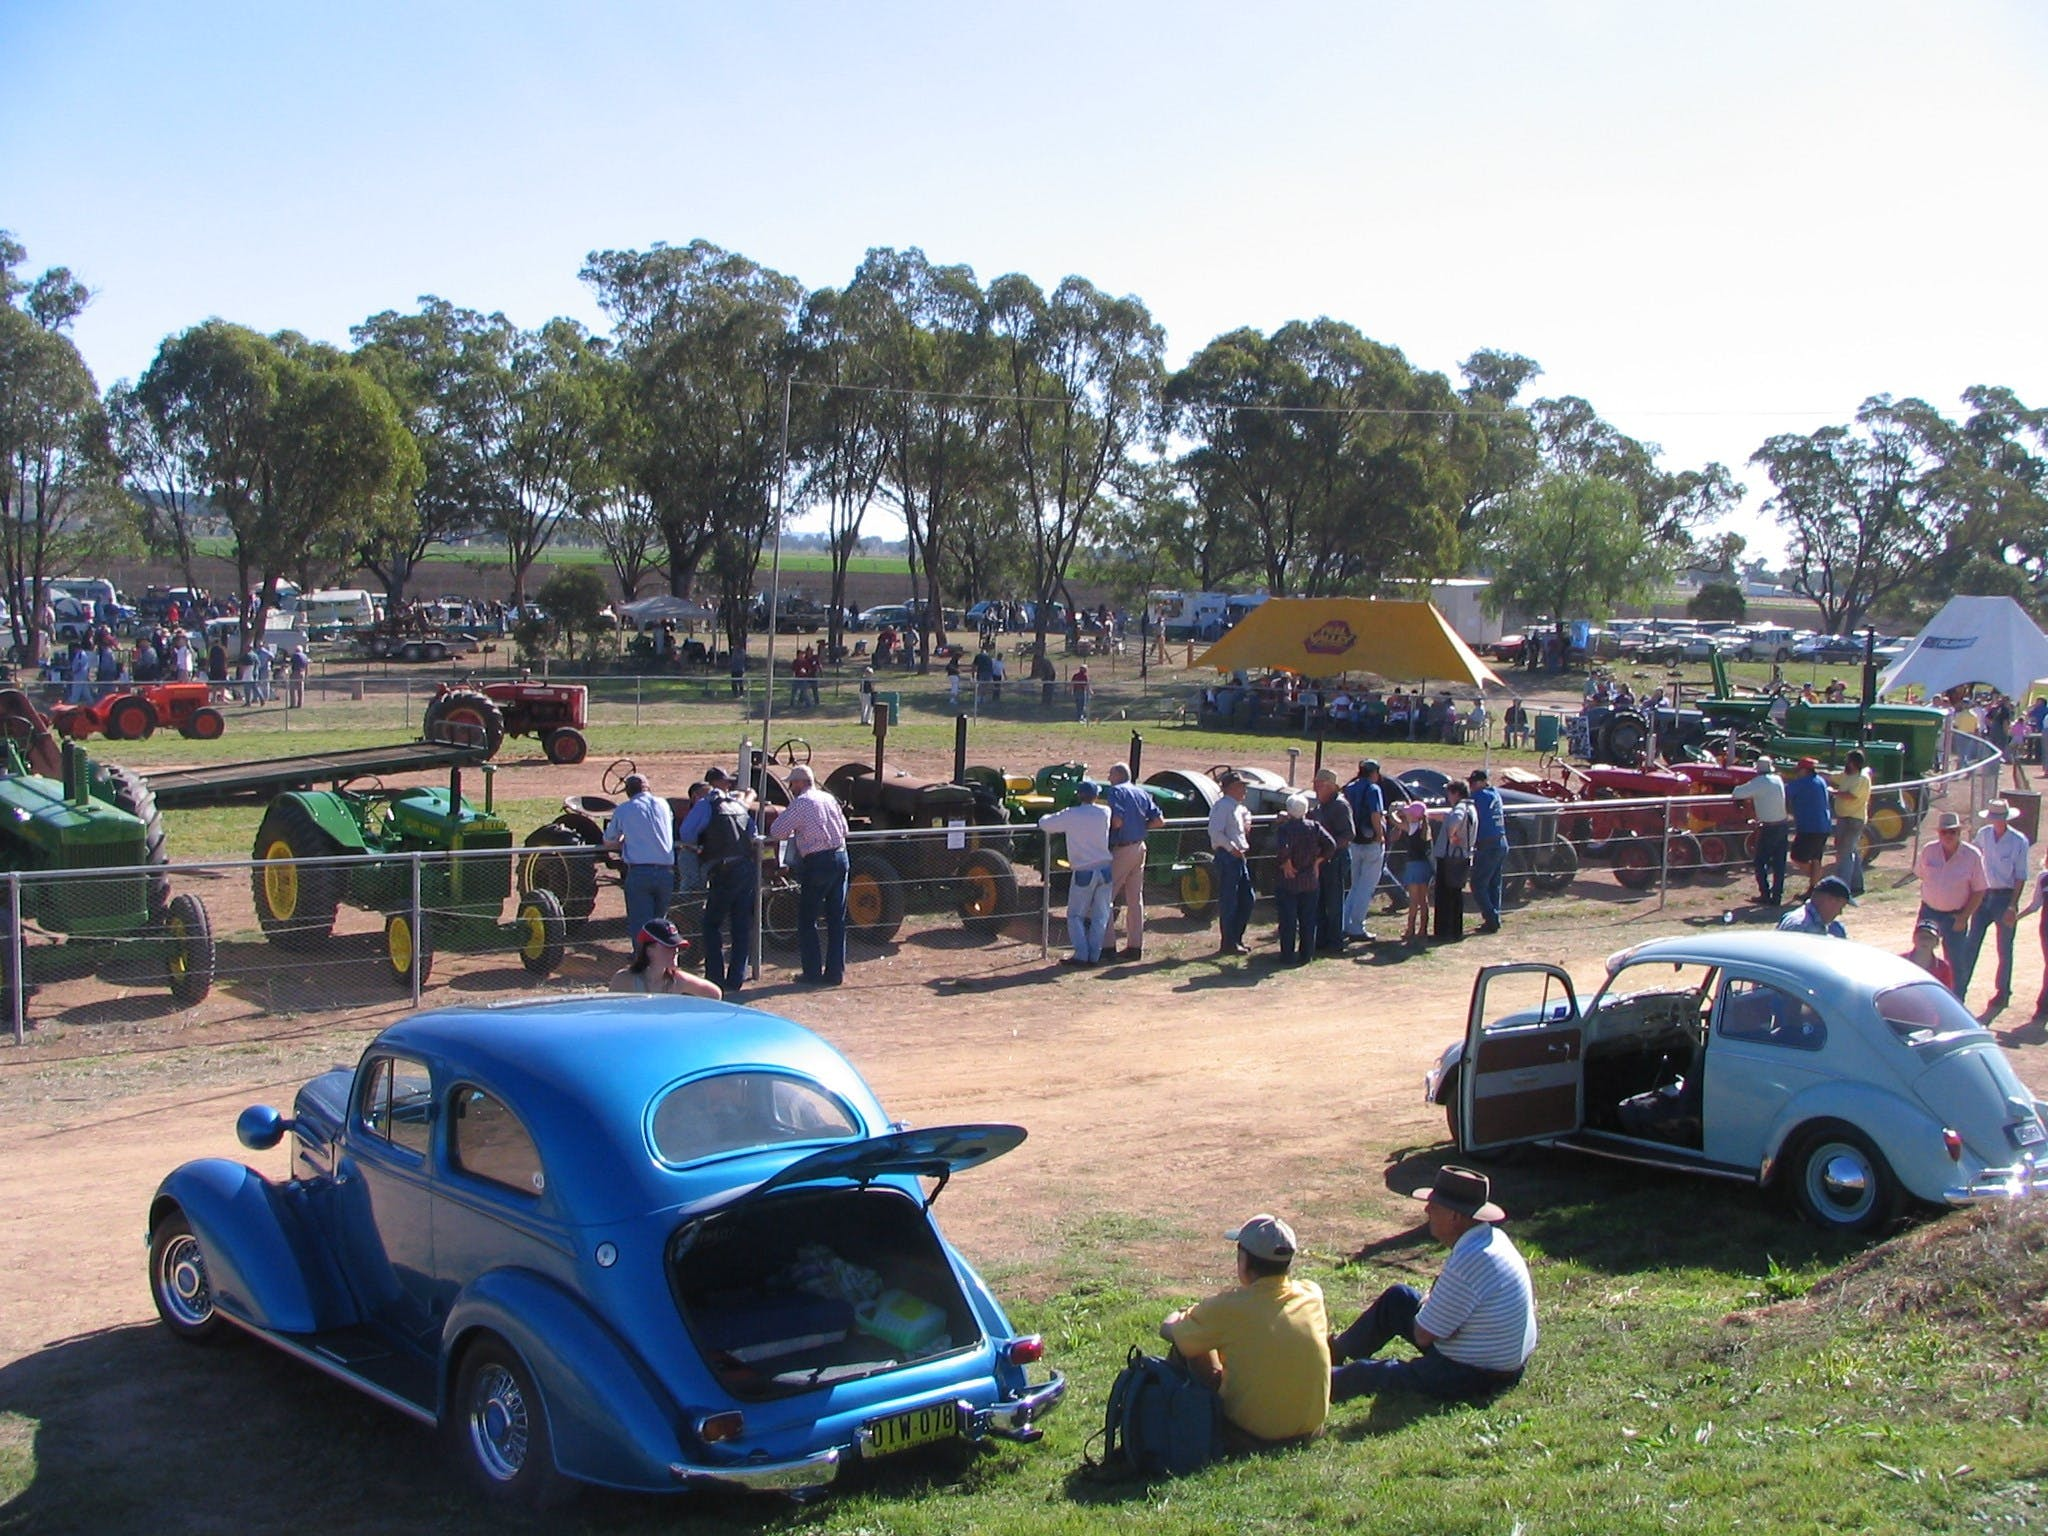 Quirindi Rural Heritage Village - Vintage Machinery and Miniature Railway Rally and Swap Meet - tourismnoosa.com